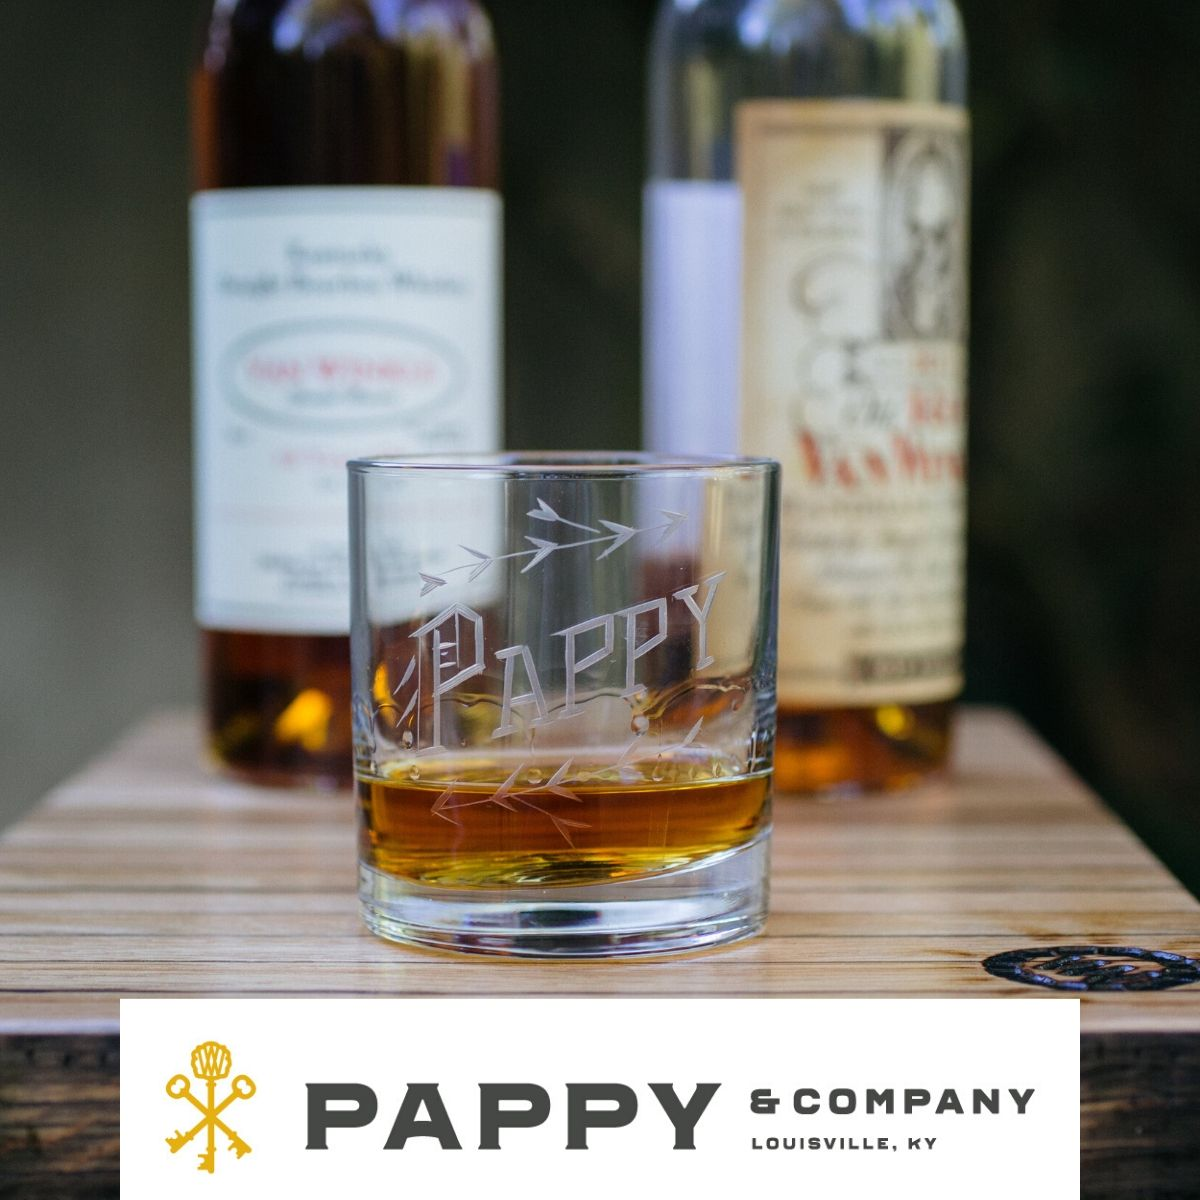 Pappy & Co